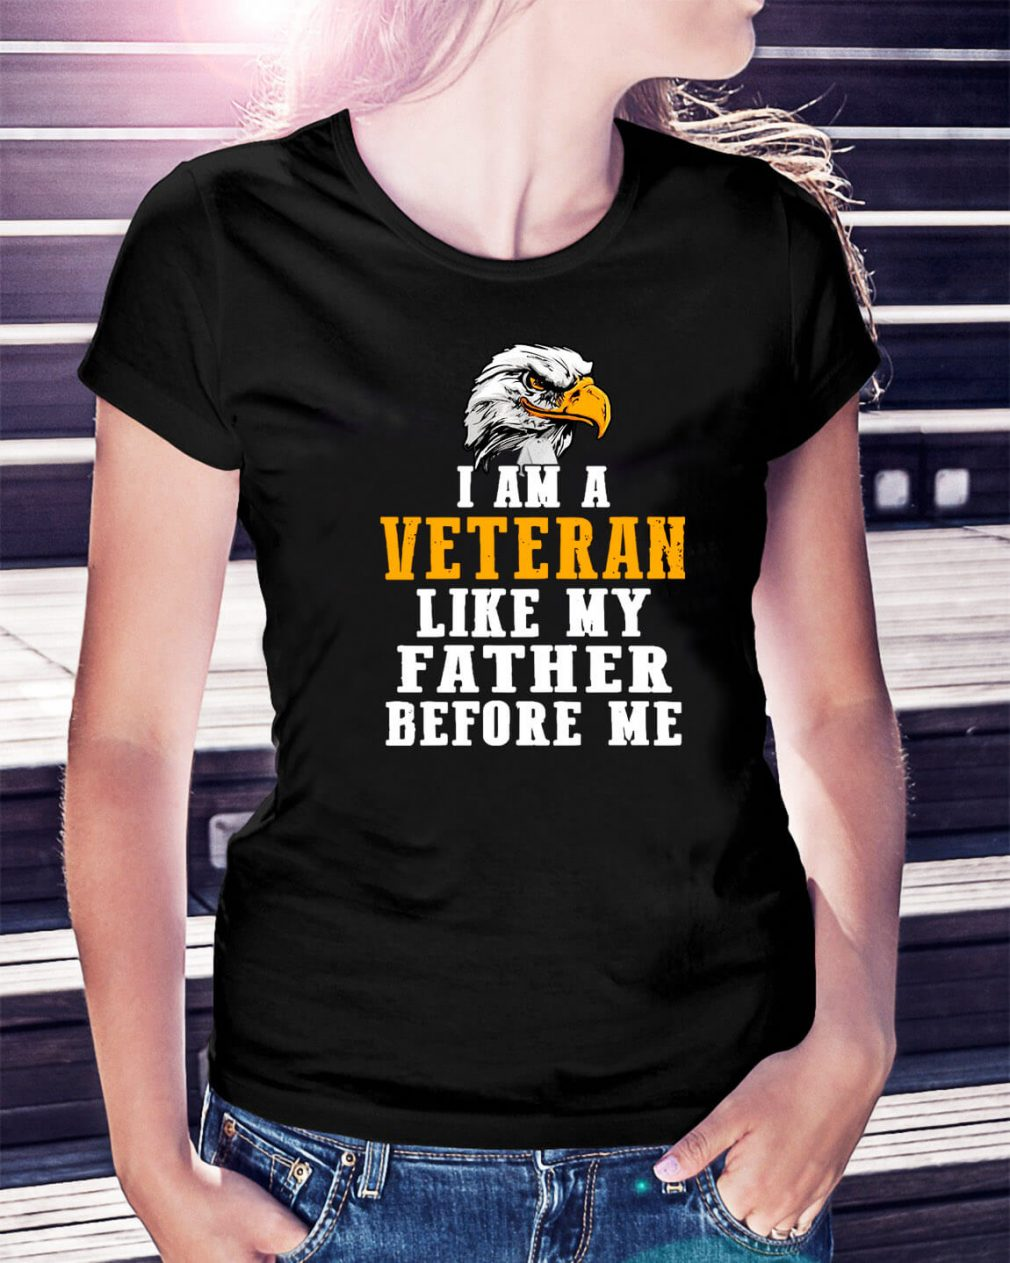 I am a Veteran like my father before me Ladies Tee